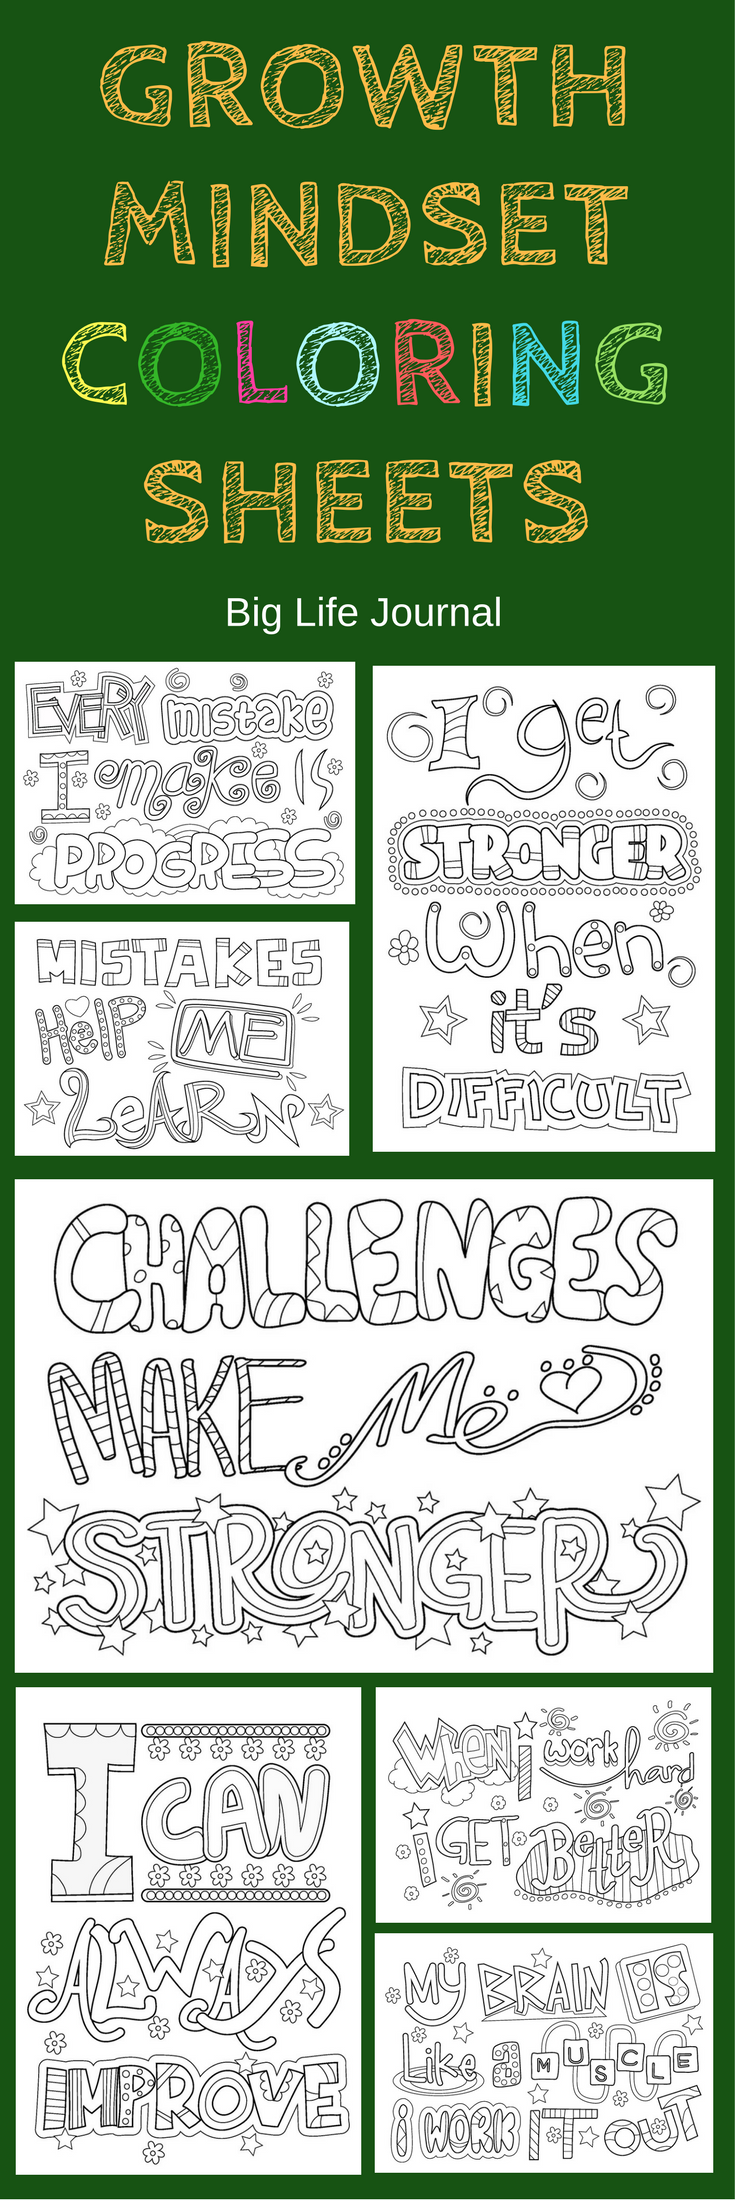 for Kids (ages 7-11) | Growth Mindset for Kids | Pinterest ...